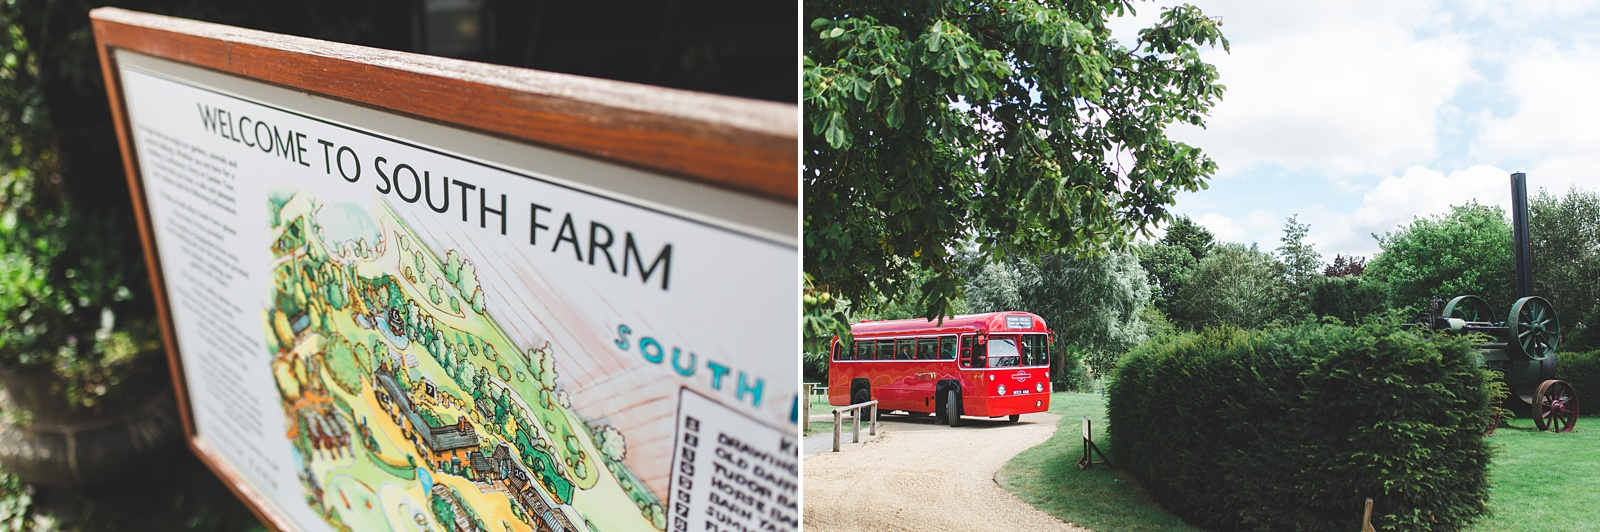 south farm recommended photographers